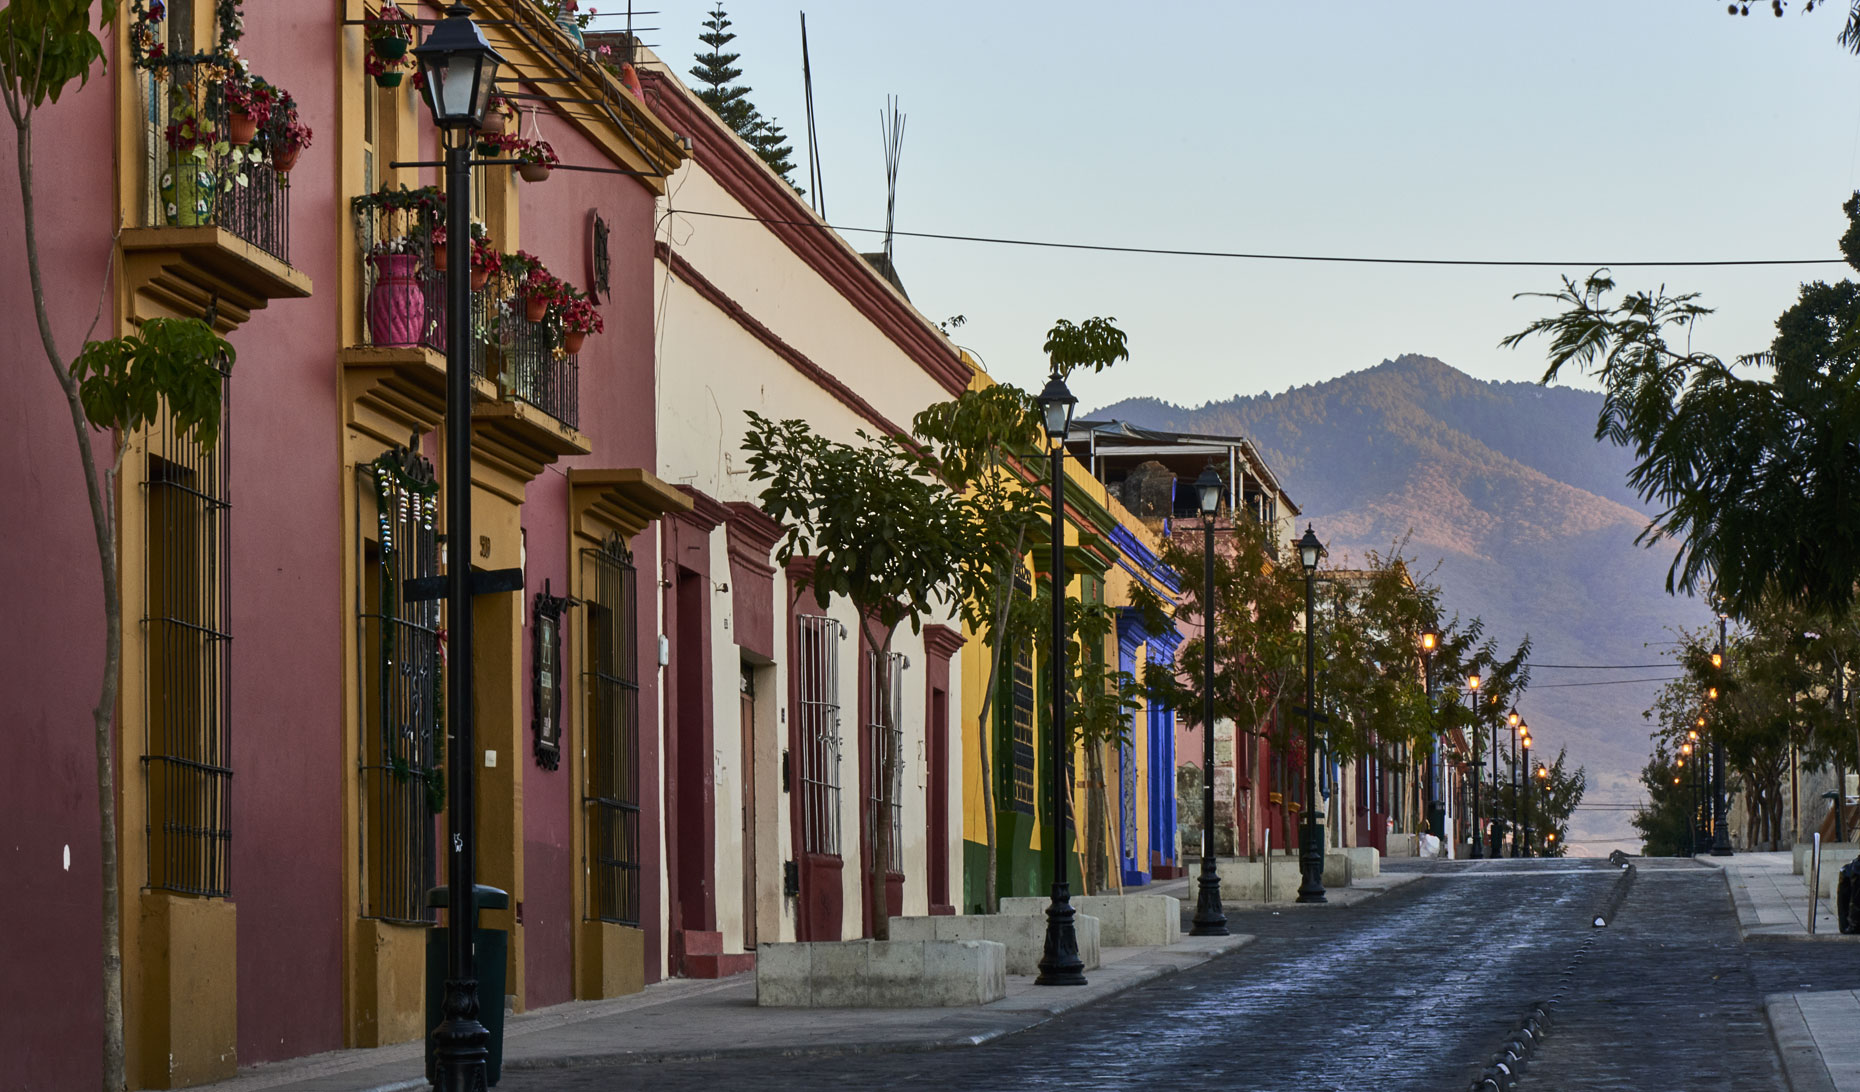 Early-morning-empty-street-view-of-Oaxaca